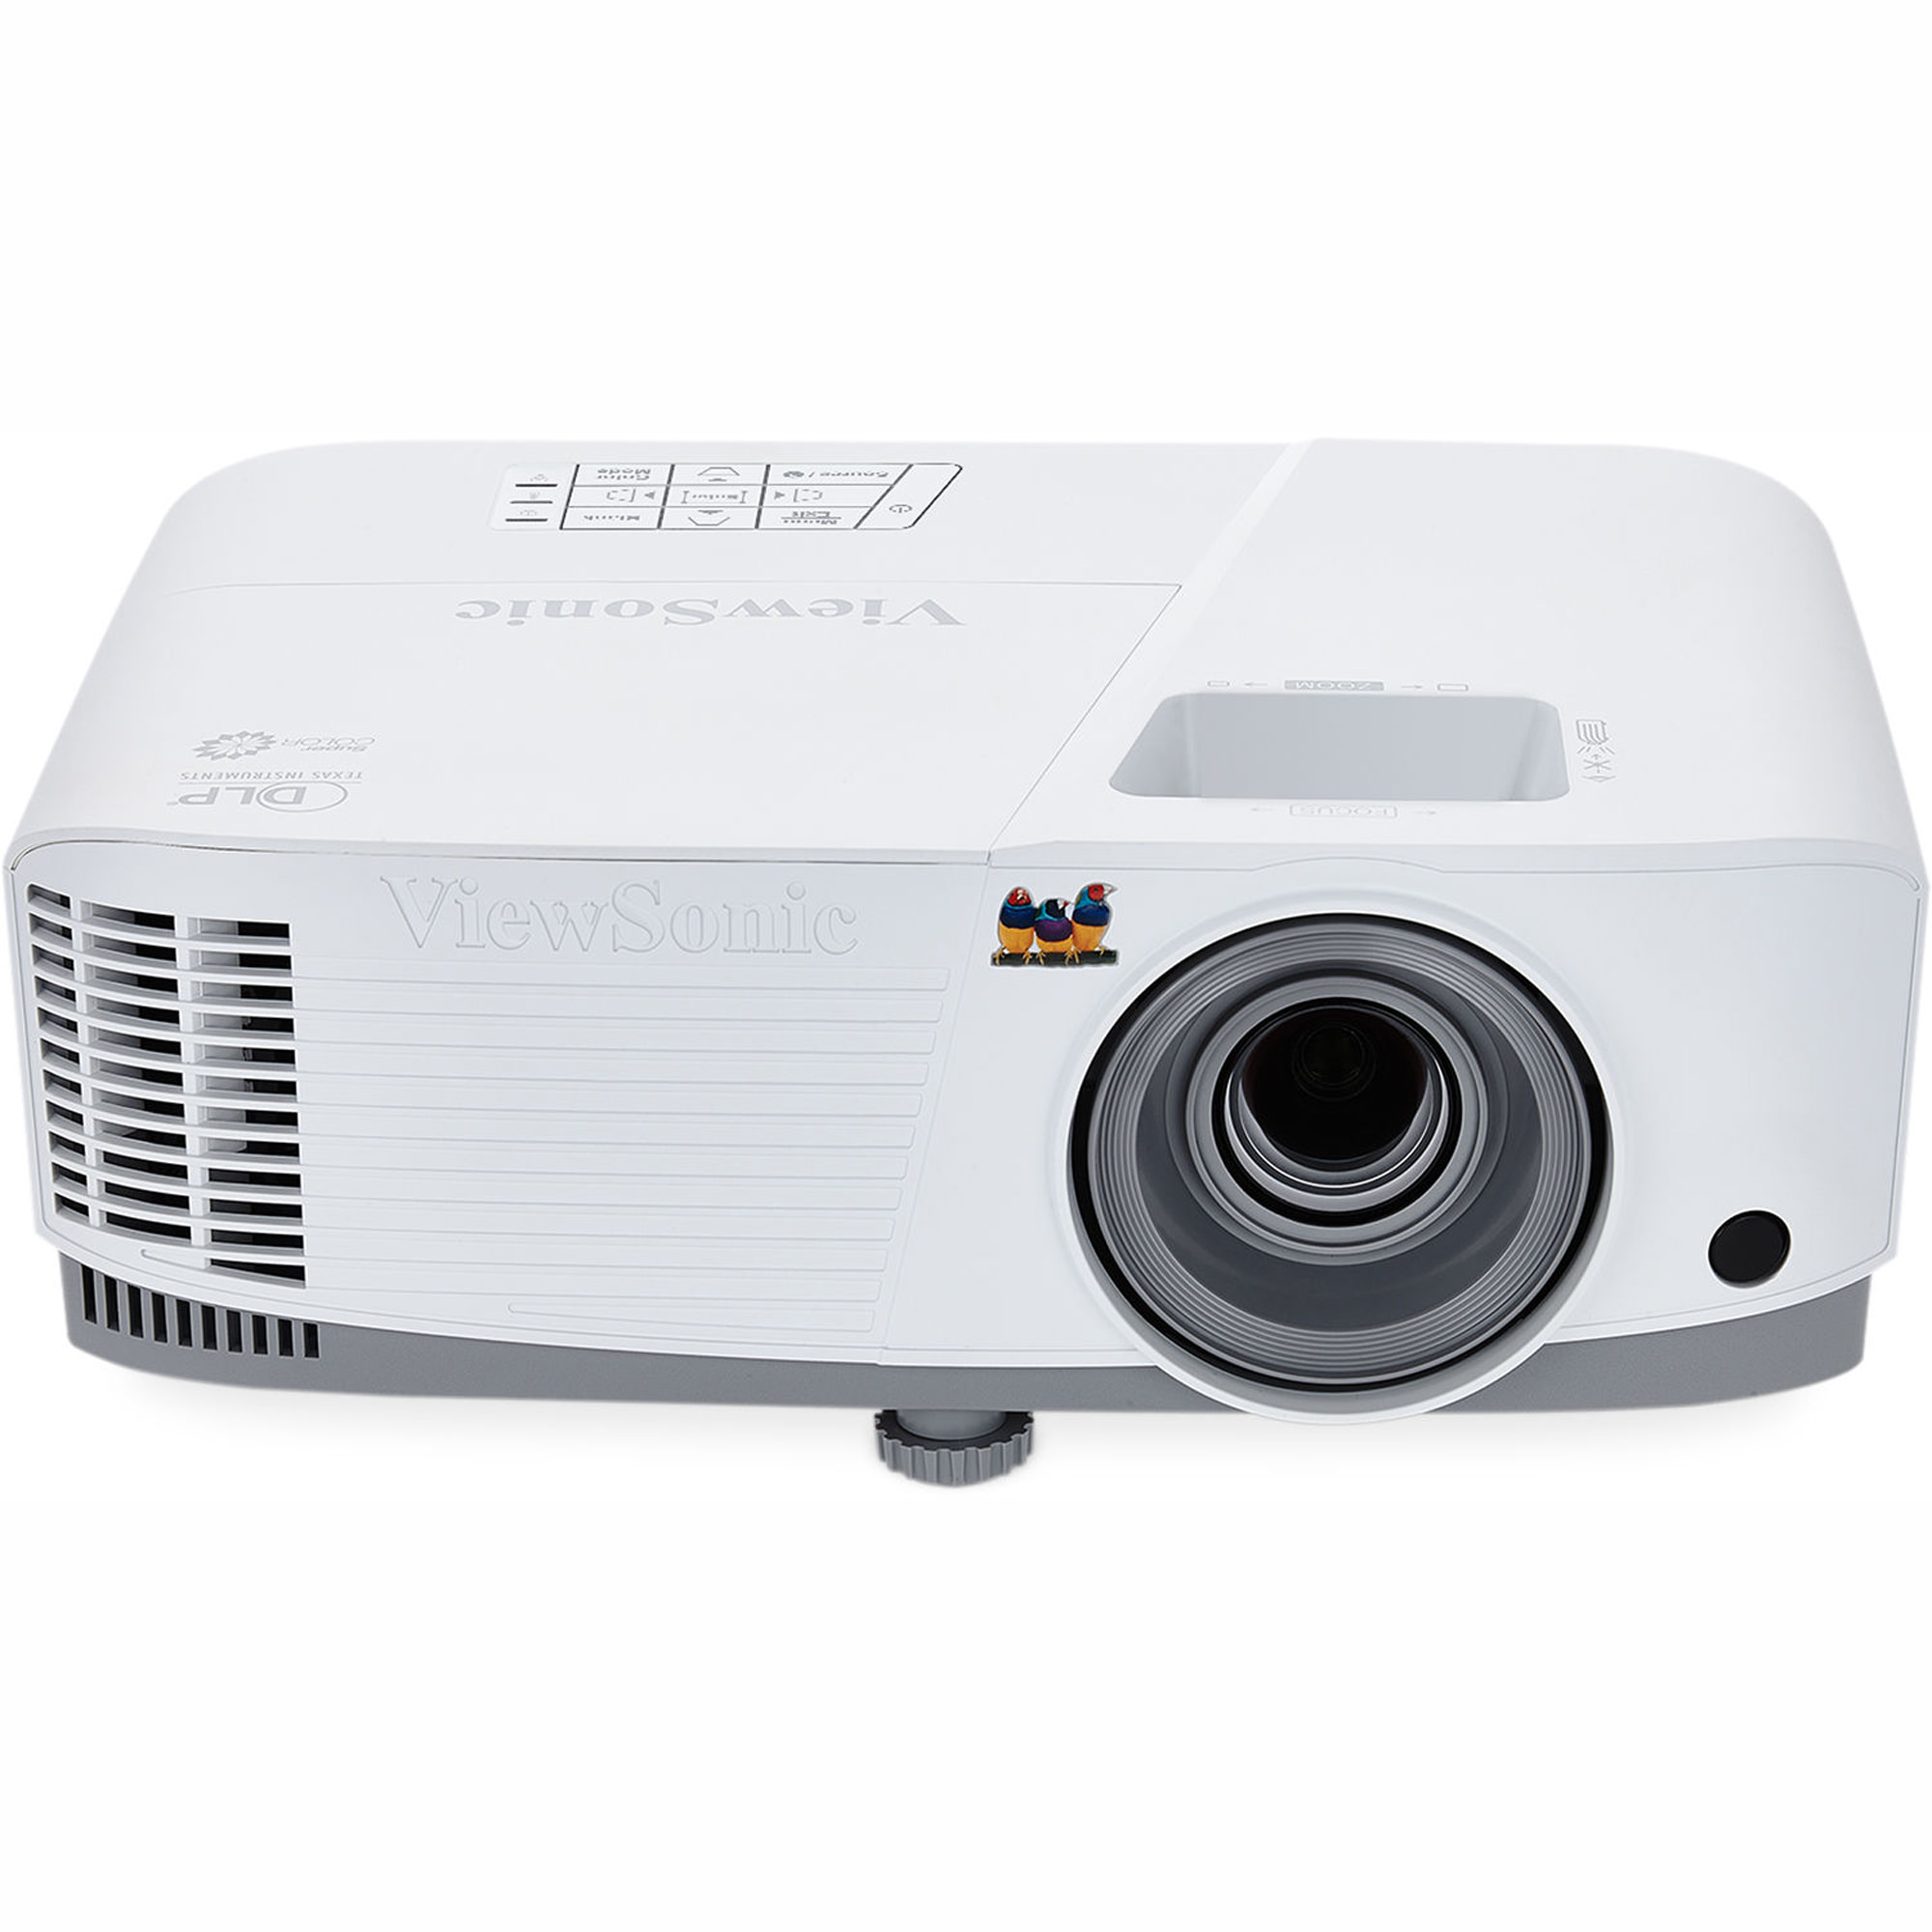 ViewSonic PG603X XGA DLP Projector, 1024x768, 3,600 lumens, Exclusive SuperColor technology, Network Capable, USB Reader and USB Display, WiFi and LAN Display, Dual 3D Blu-ray Ready HDMI Inputs